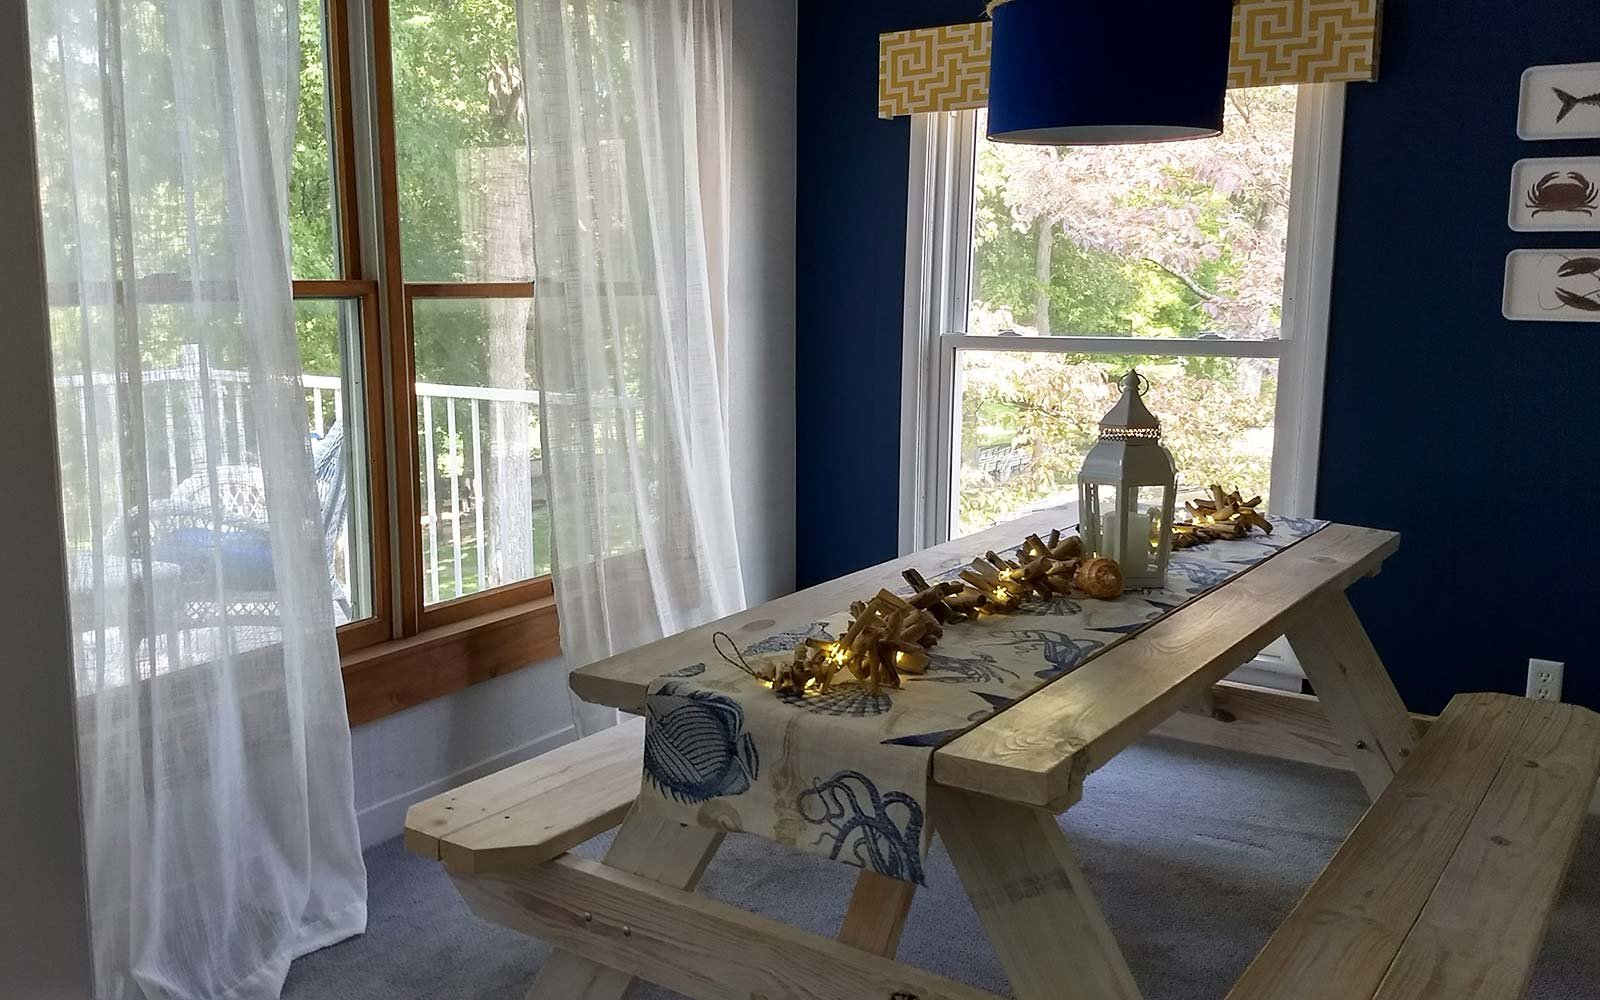 Airbnb Holiday Vacation Rental Treetop Winona Lake Indiana